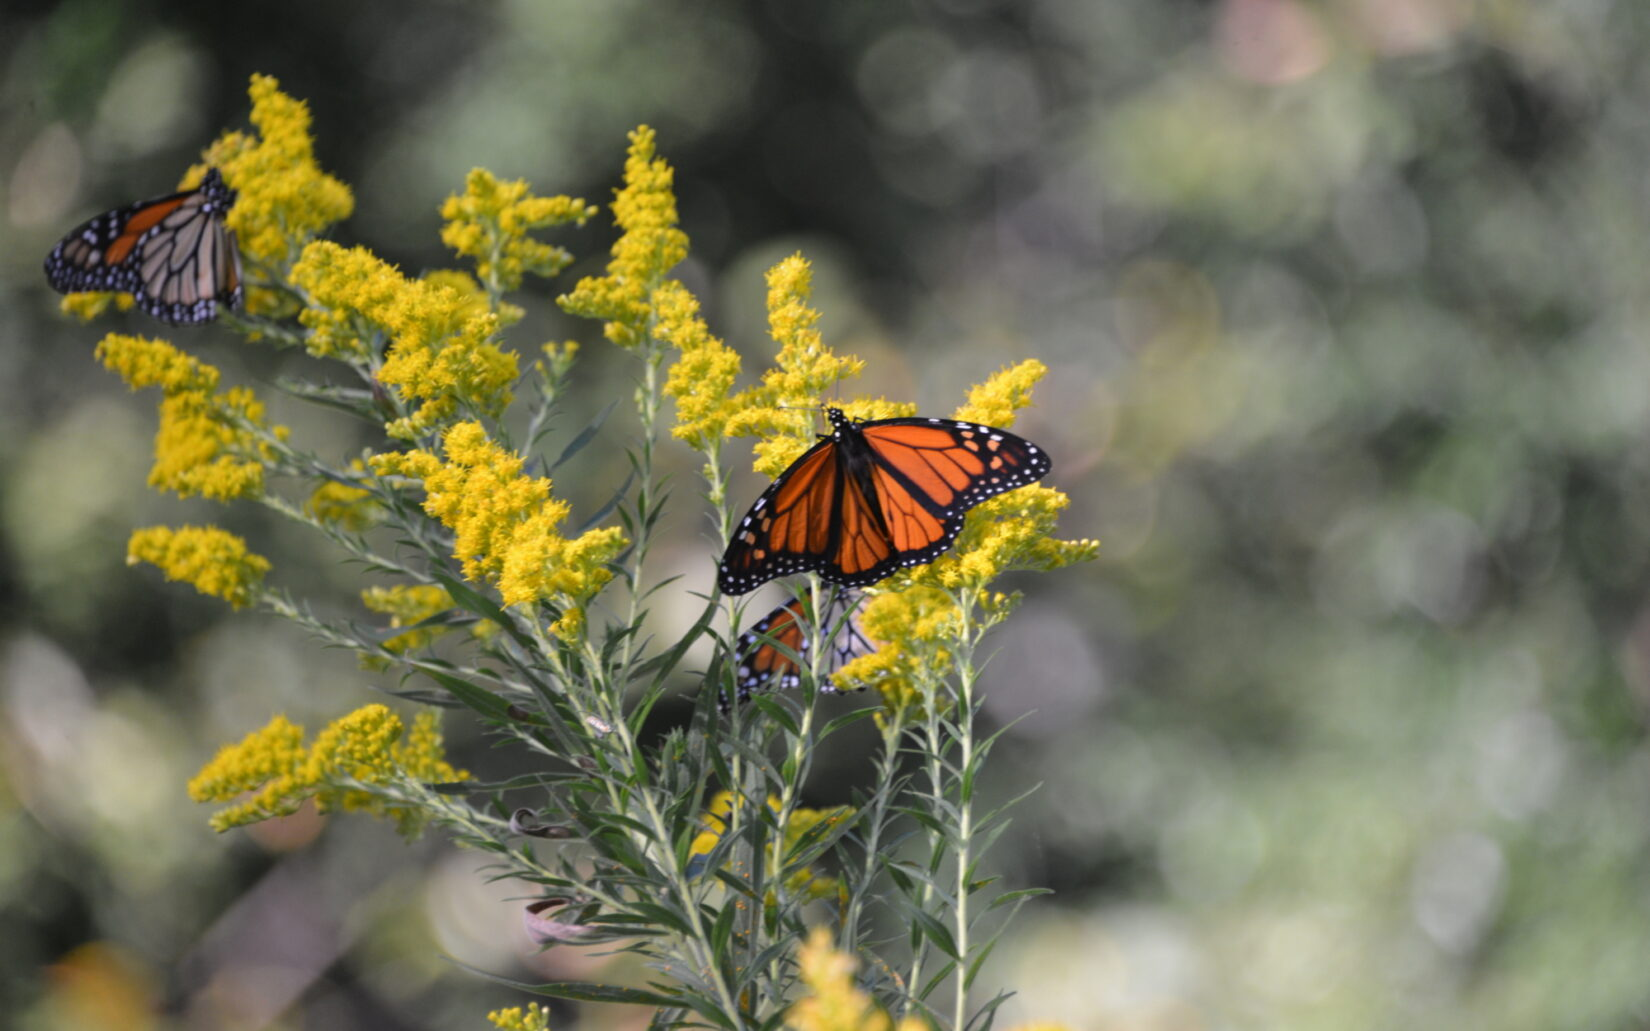 A monarch butterfly photographed in Central Park